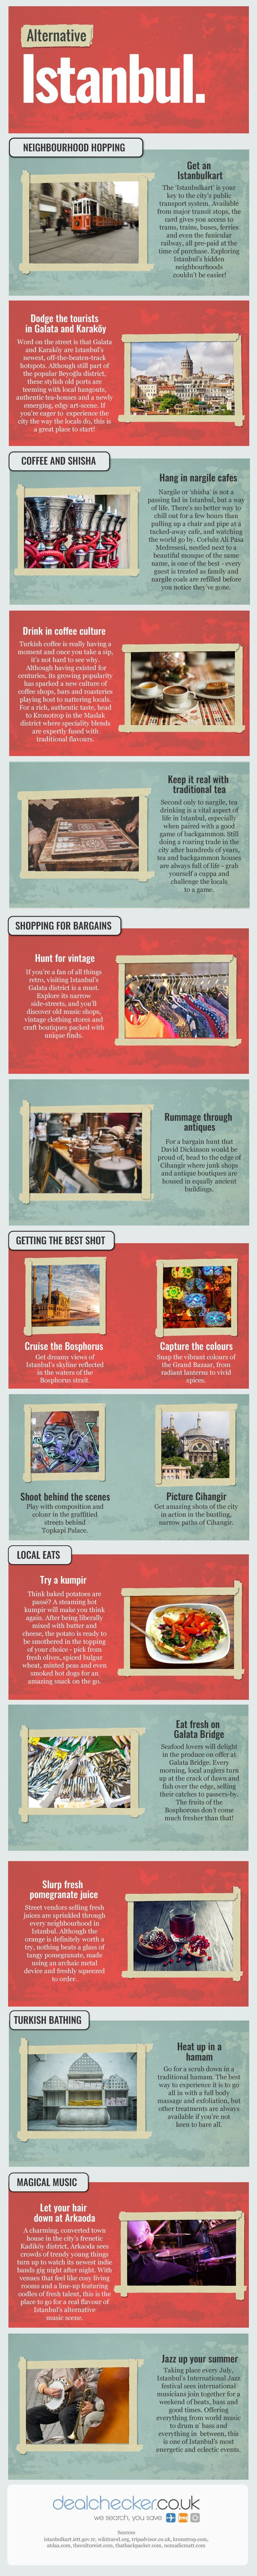 An Alternative Guide to Istanbul #infographic